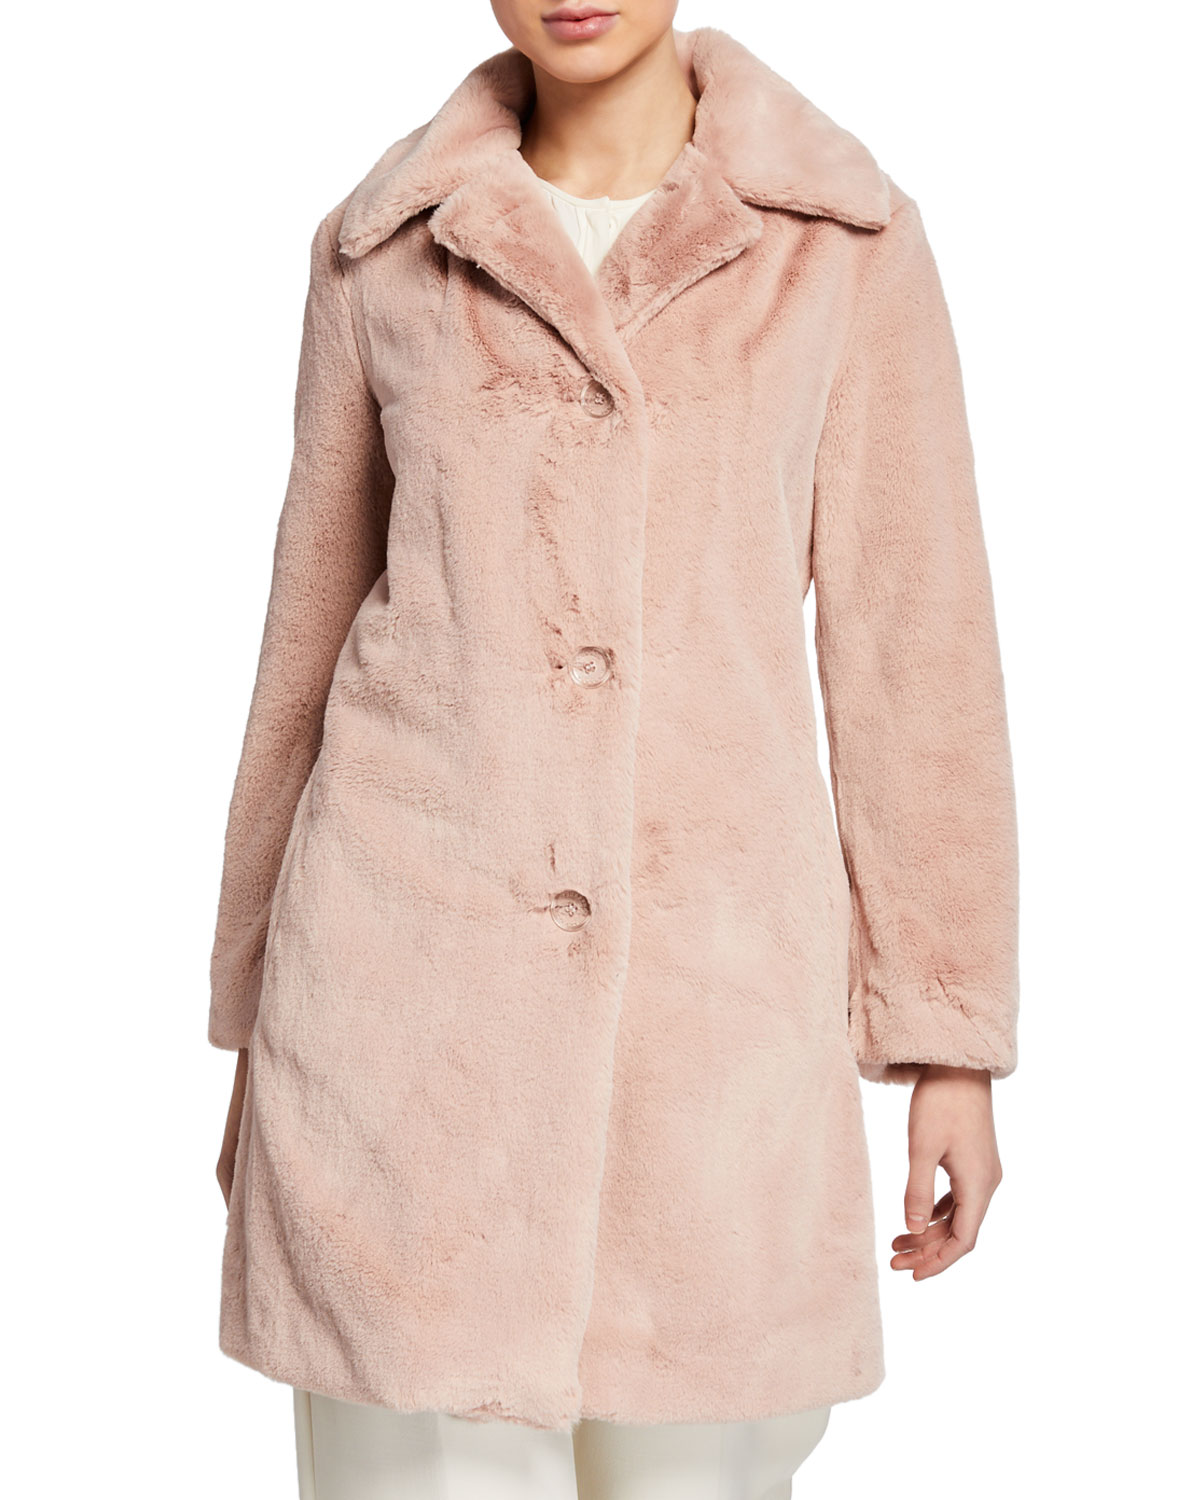 283784ba Buy burberry coats for women - Best women's burberry coats shop - Cools.com